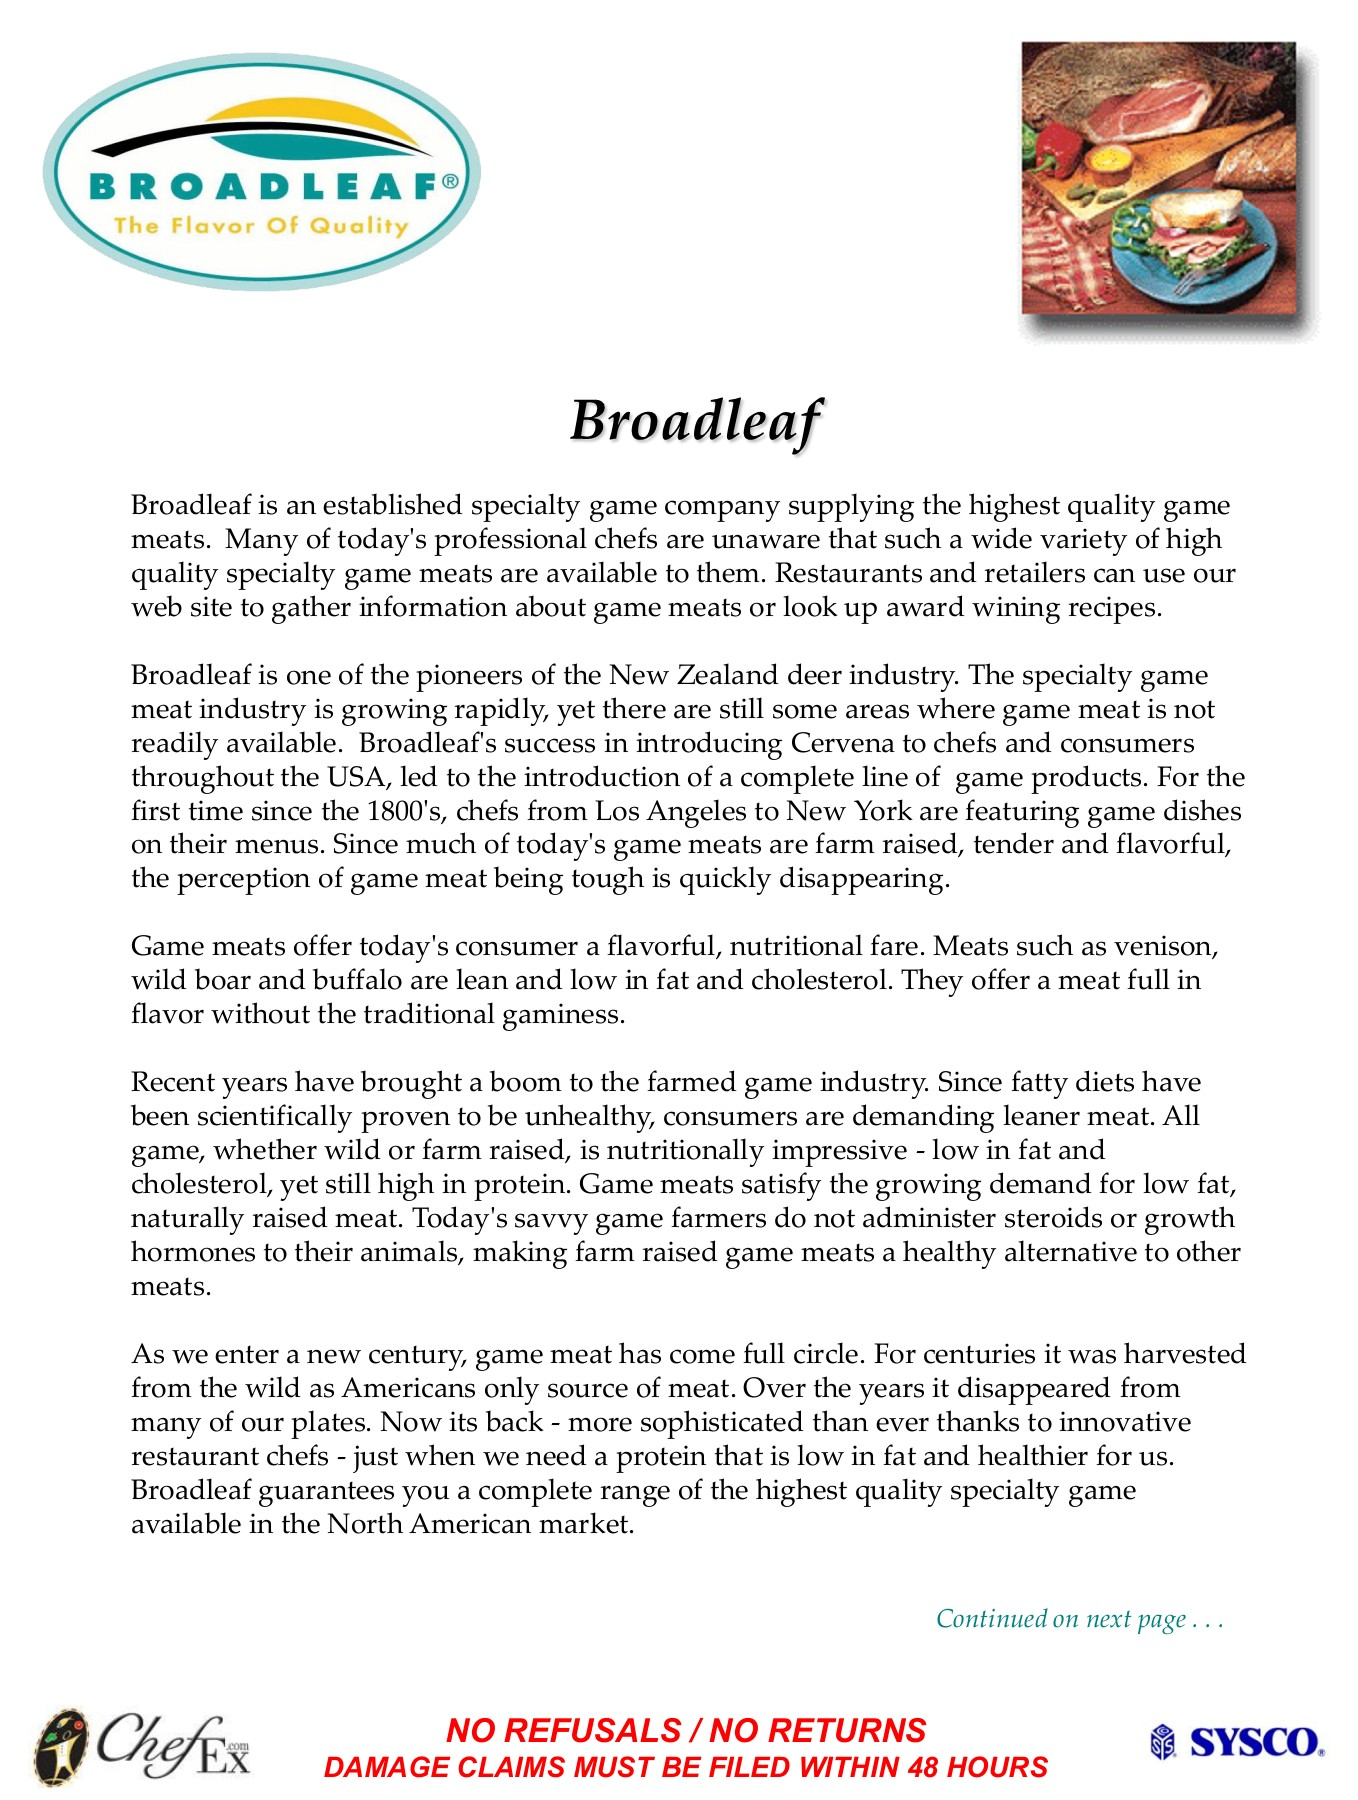 Broadleaf - Sysco Pages 1 - 4 - Text